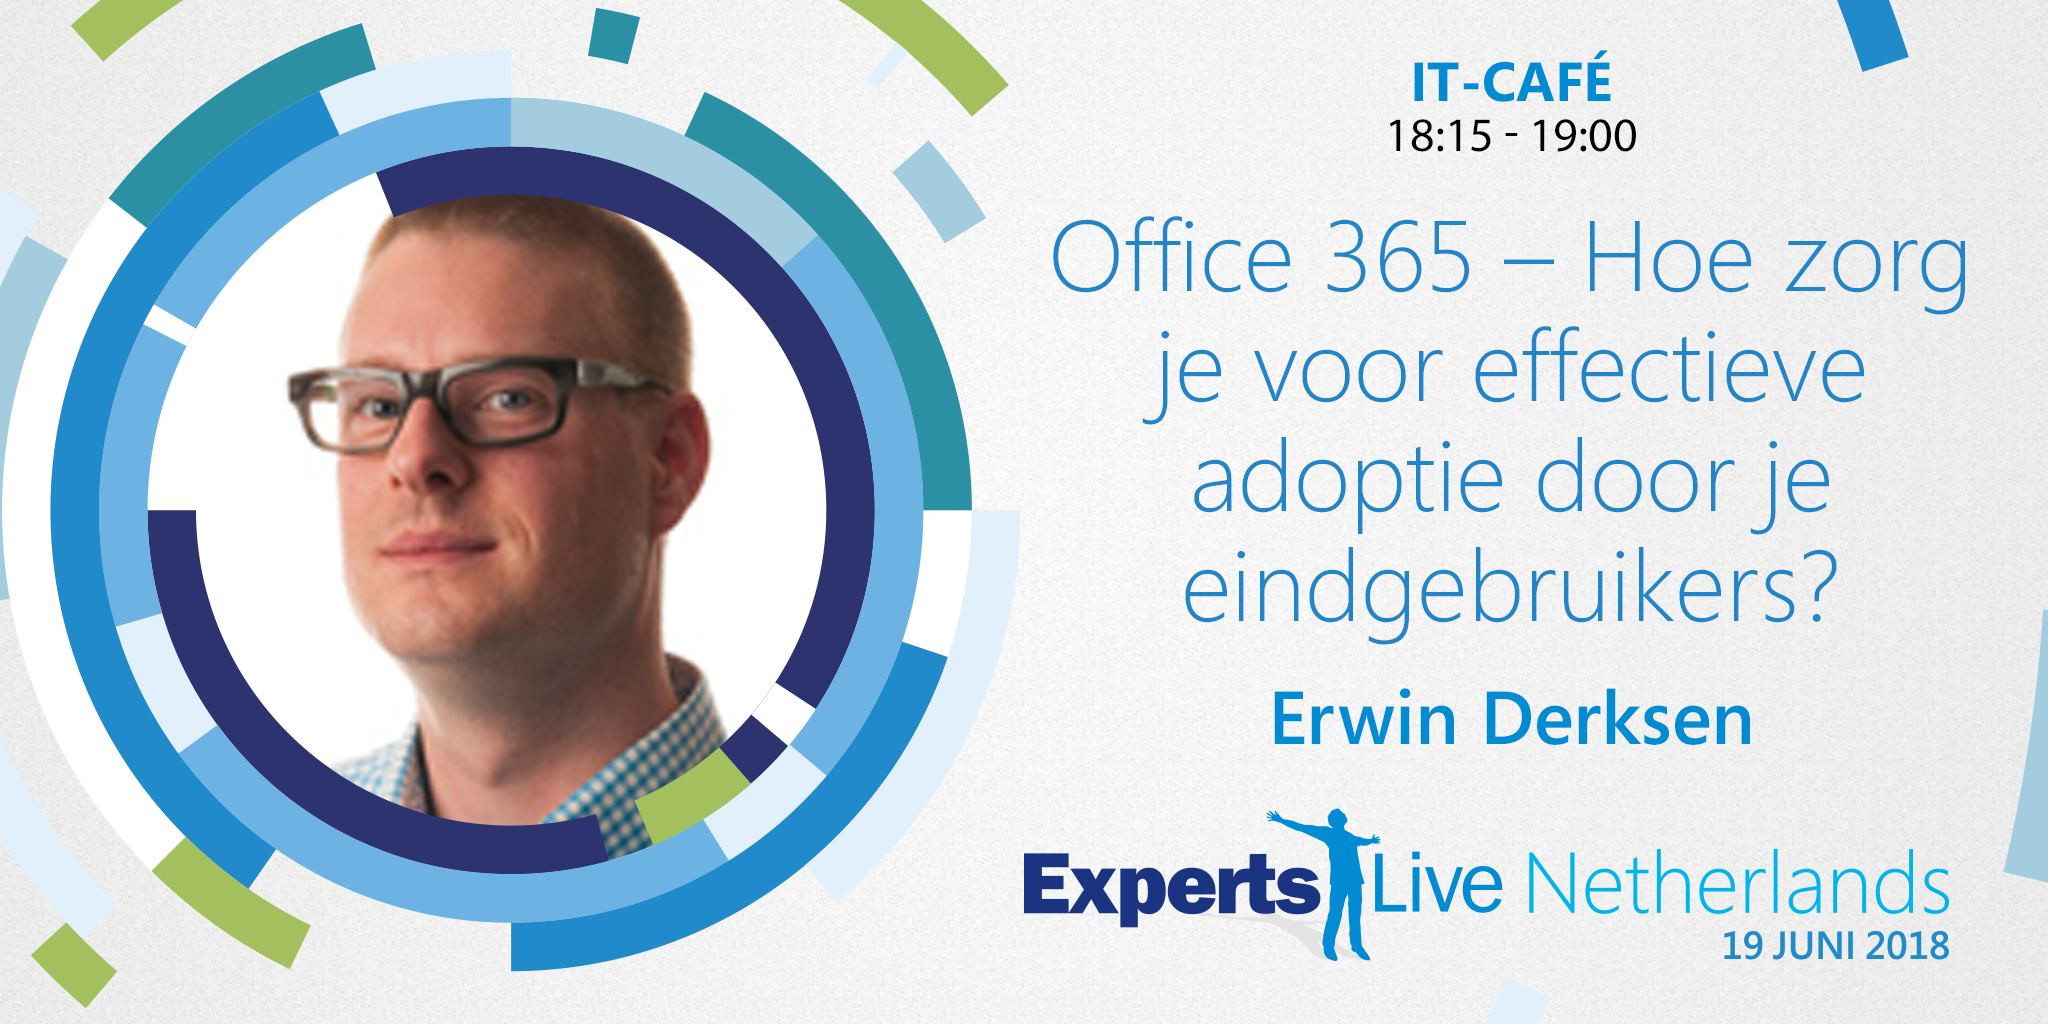 Experts Live - Office 365 - Erwin Derksen